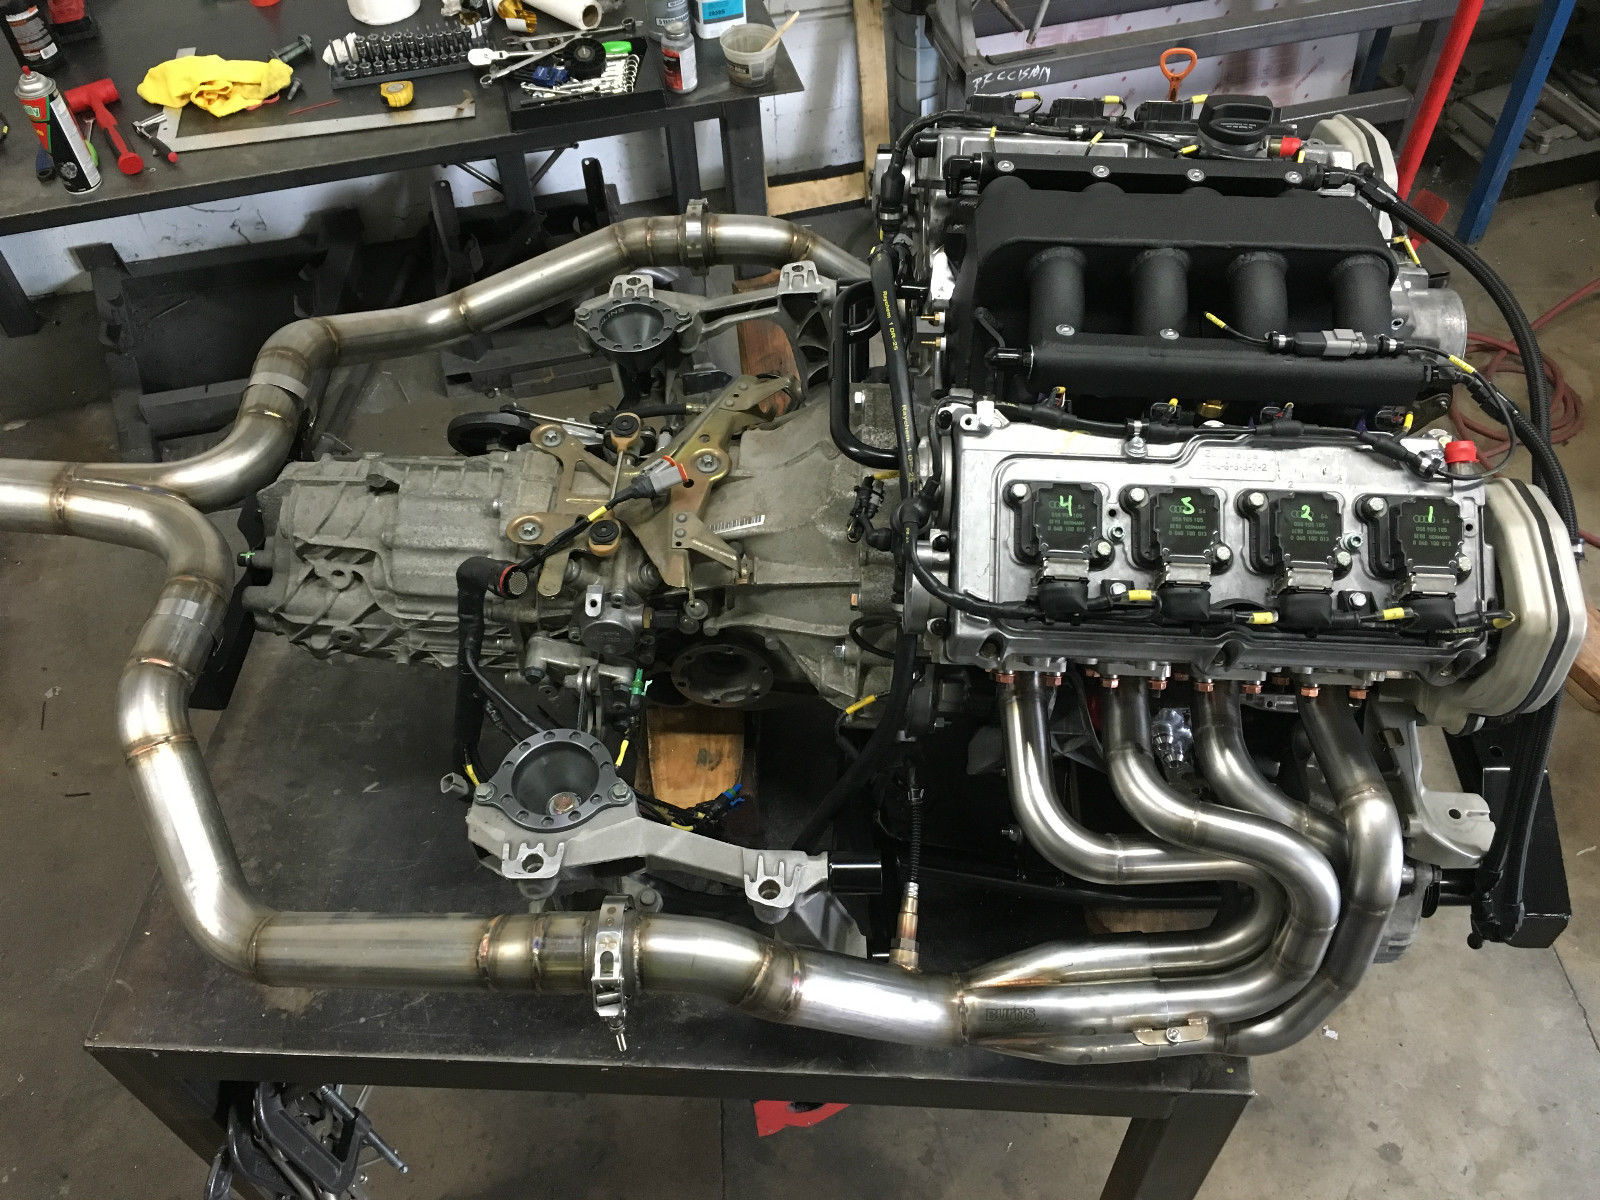 Porsche Boxster With An Audi V8 Engine Swap Depot